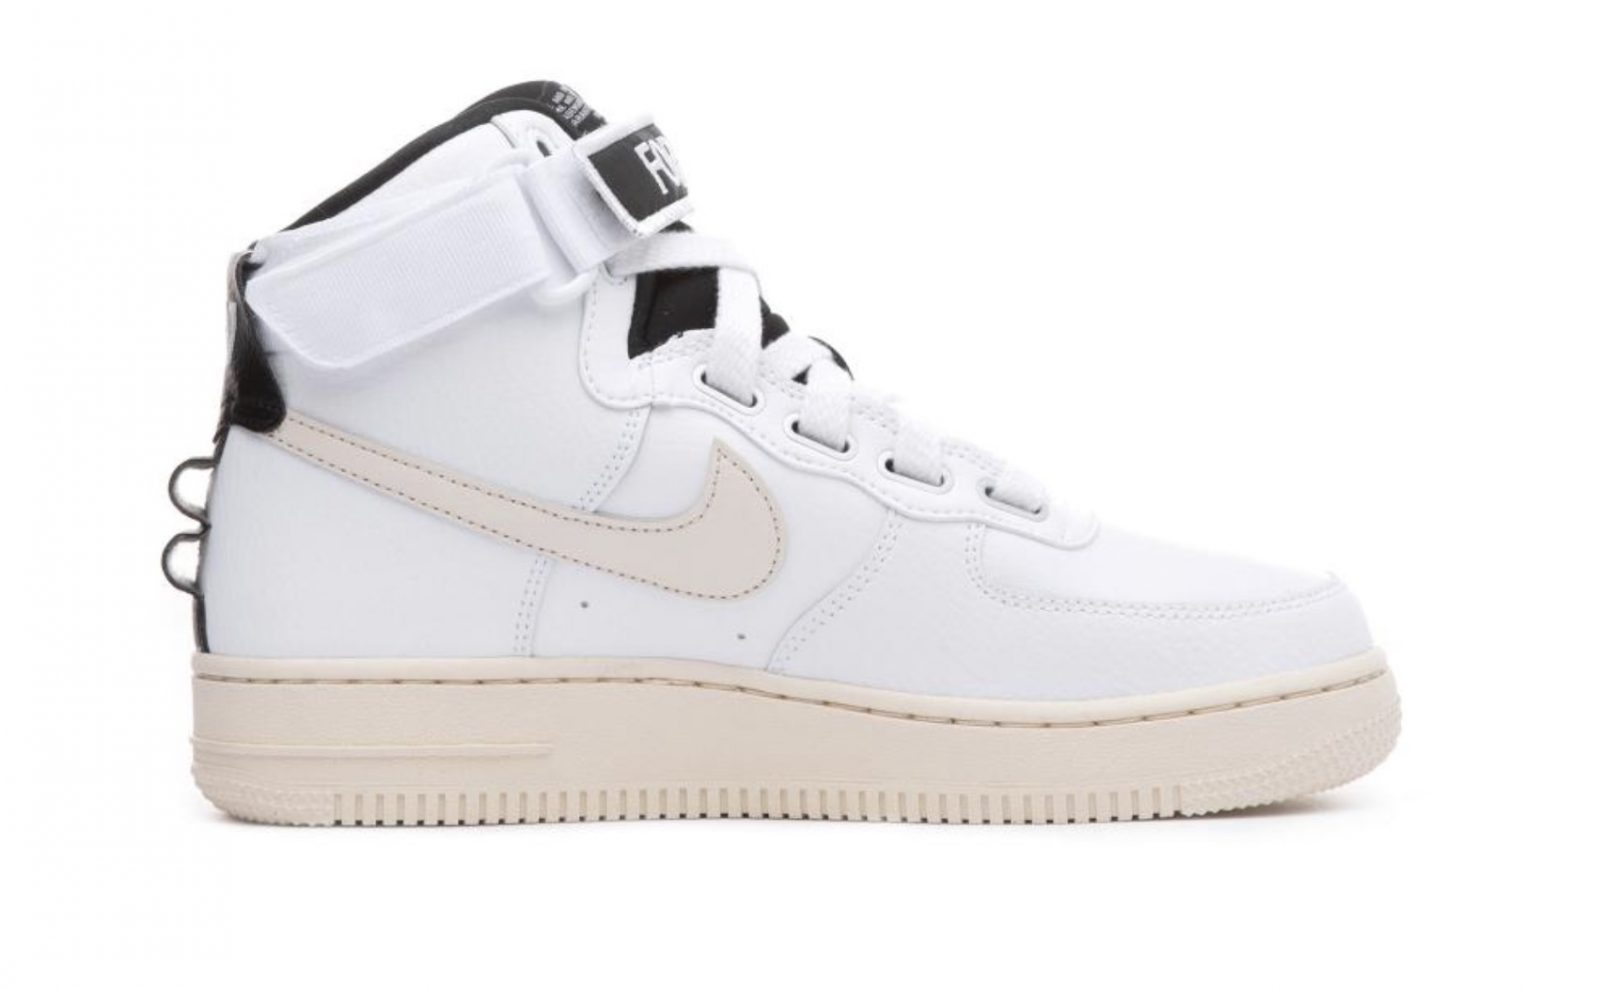 Nike Air Force 1 High Utility Womens